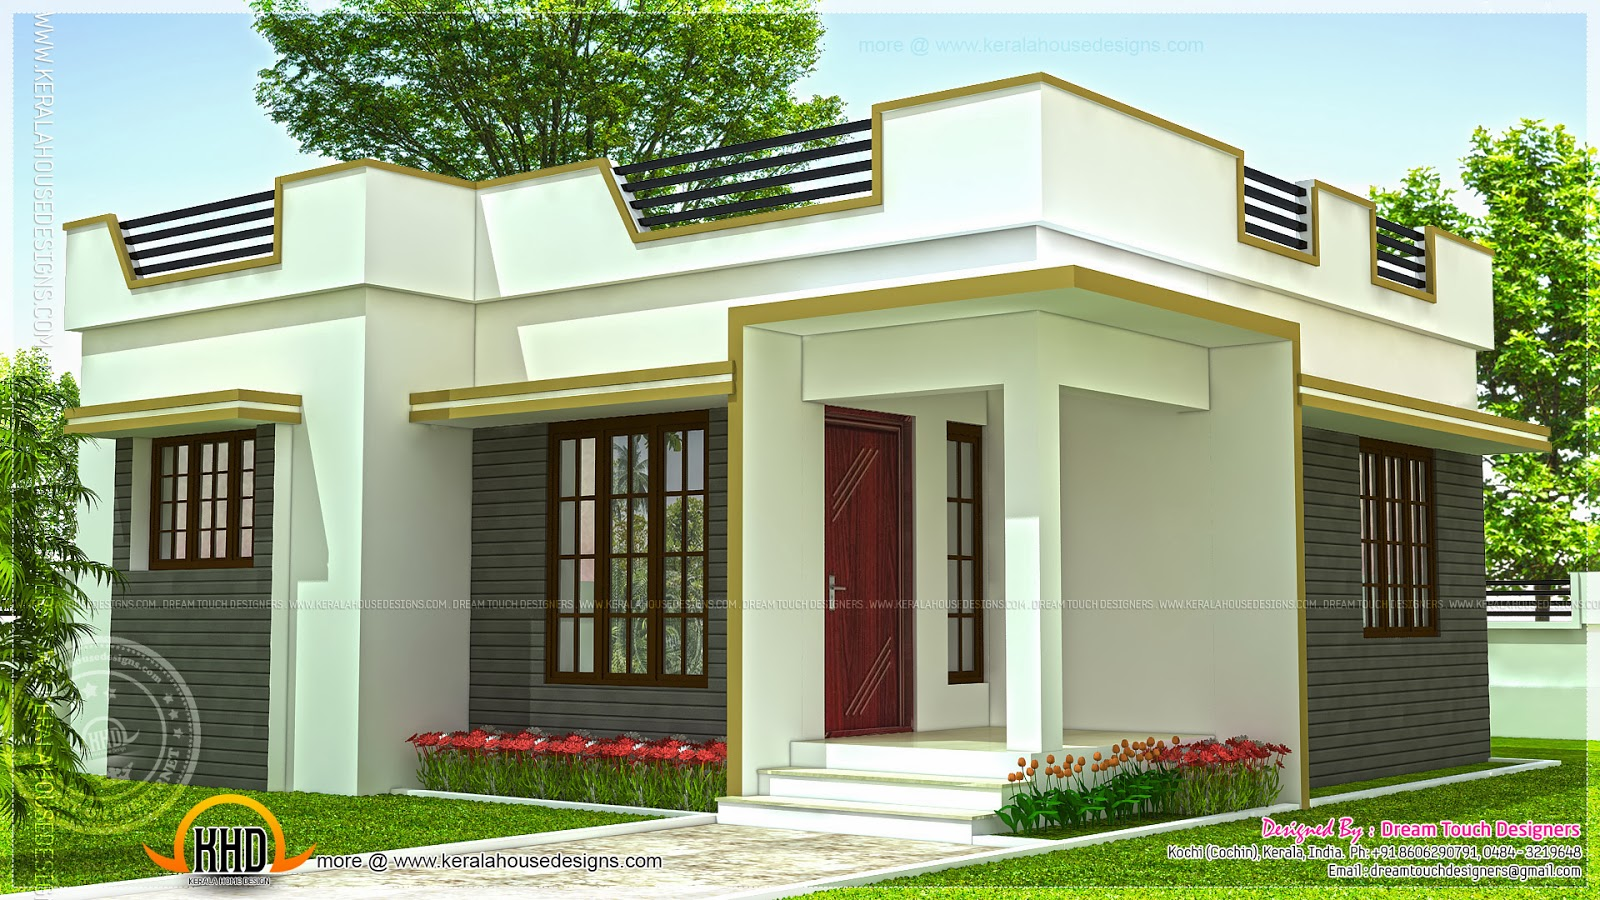 Lately 21 small house design kerala small house kerala jpg 1600x900 photo pinterest house